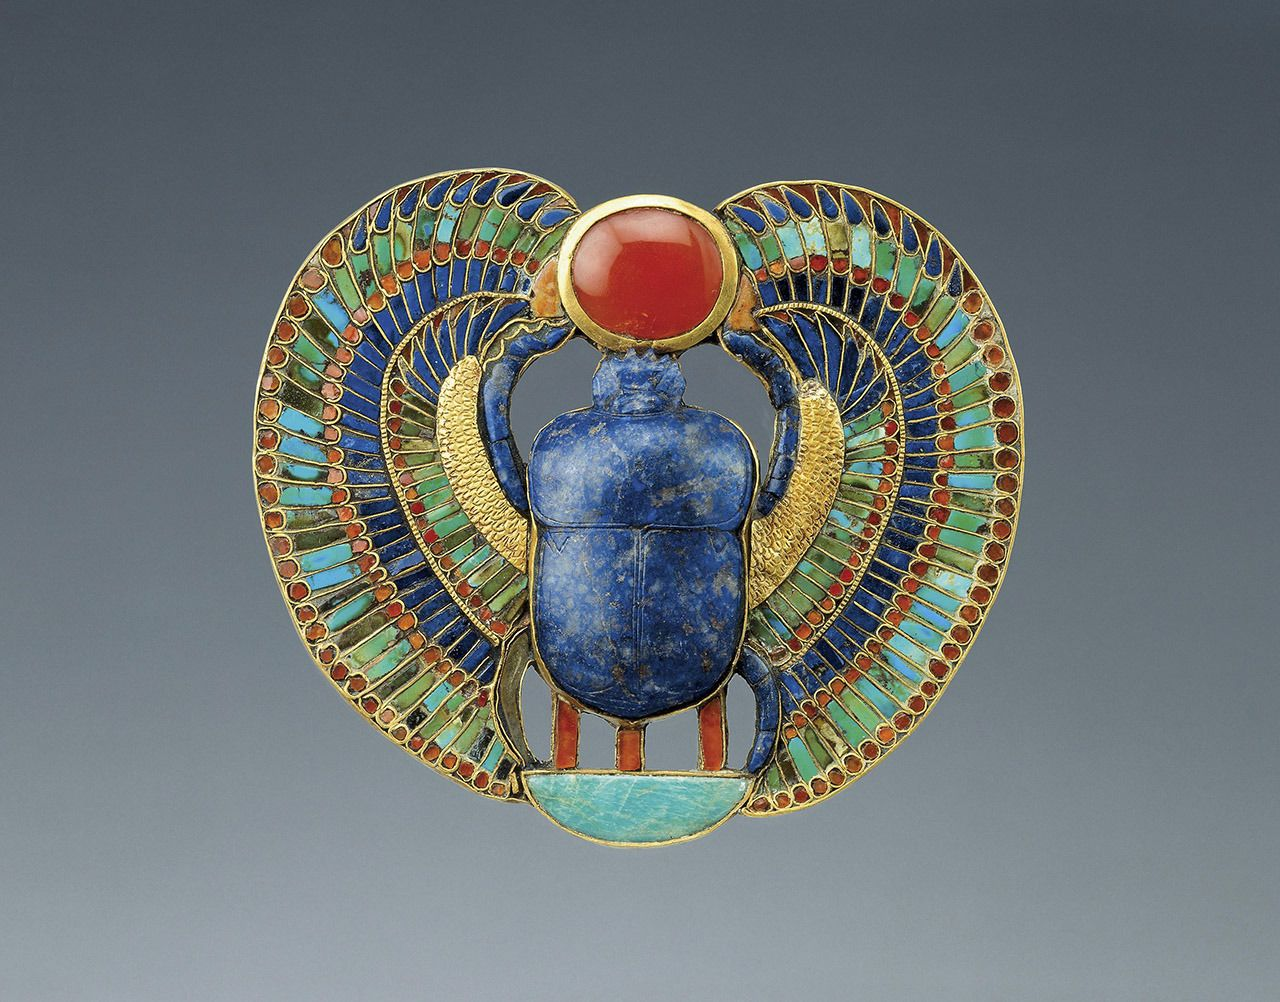 The Scarab - Ancient Egyptian Symbols - Egypt Tours Portal